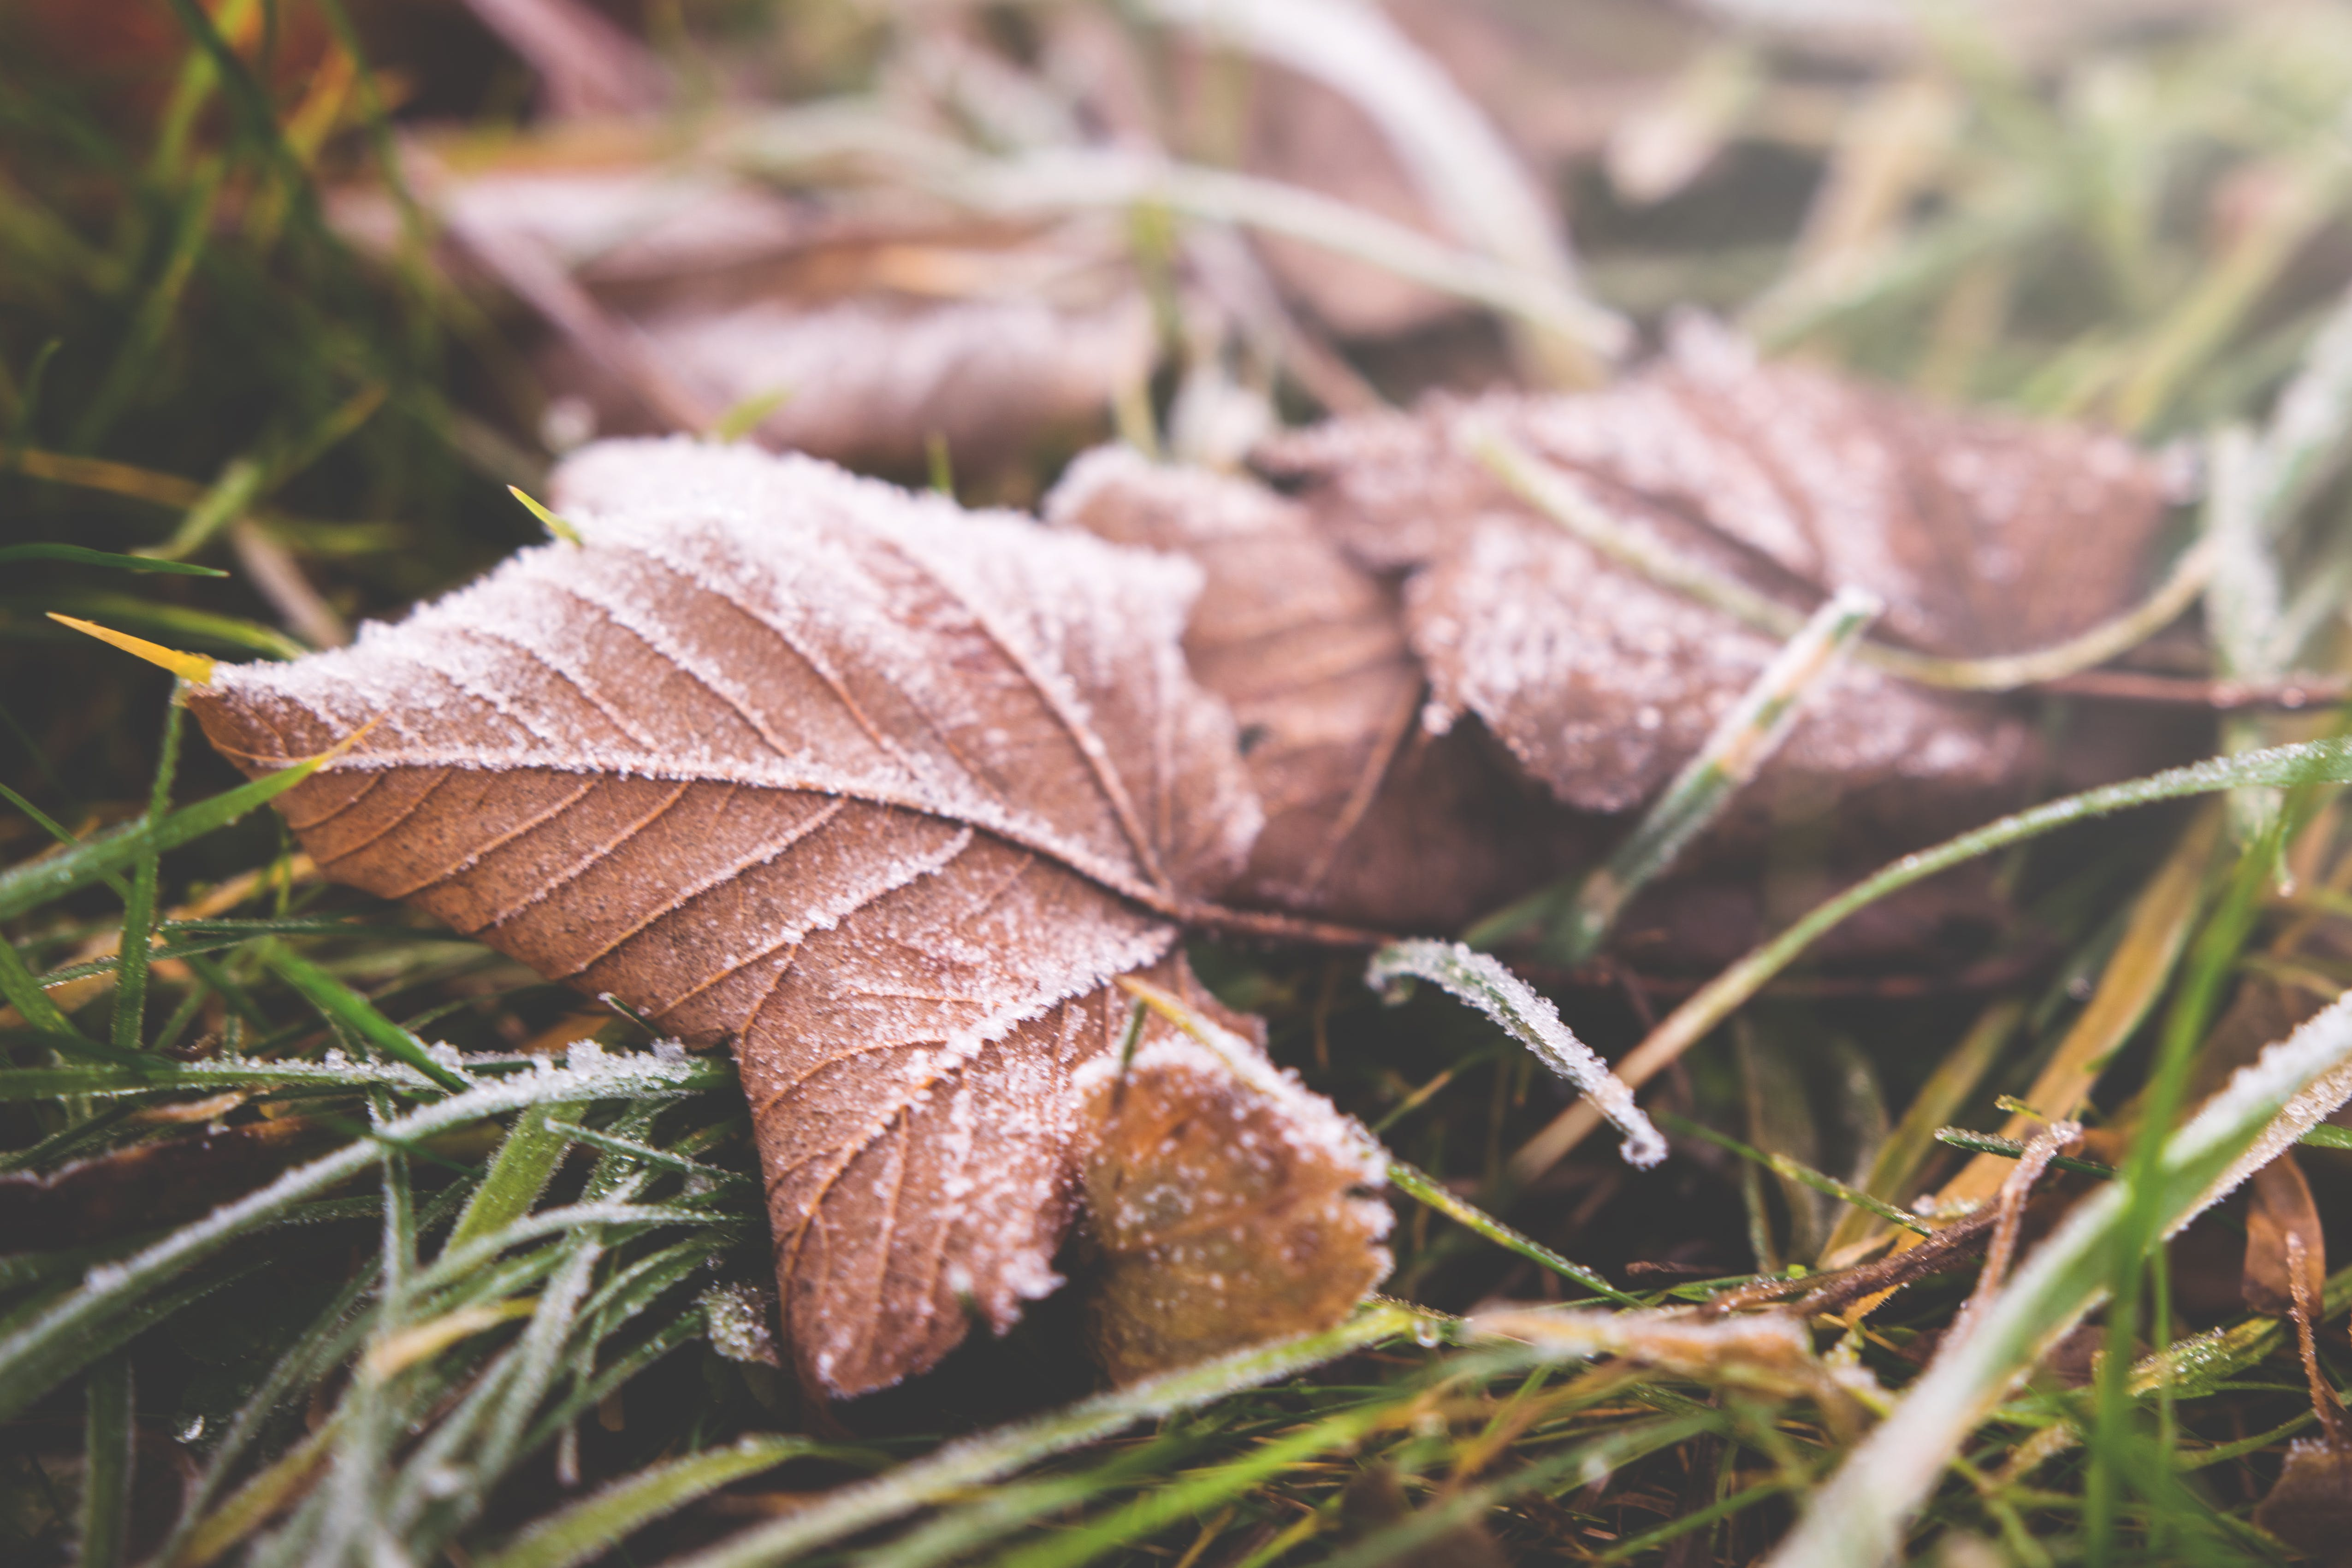 Brown Leafed on Green Grass in Selective Focus Photography